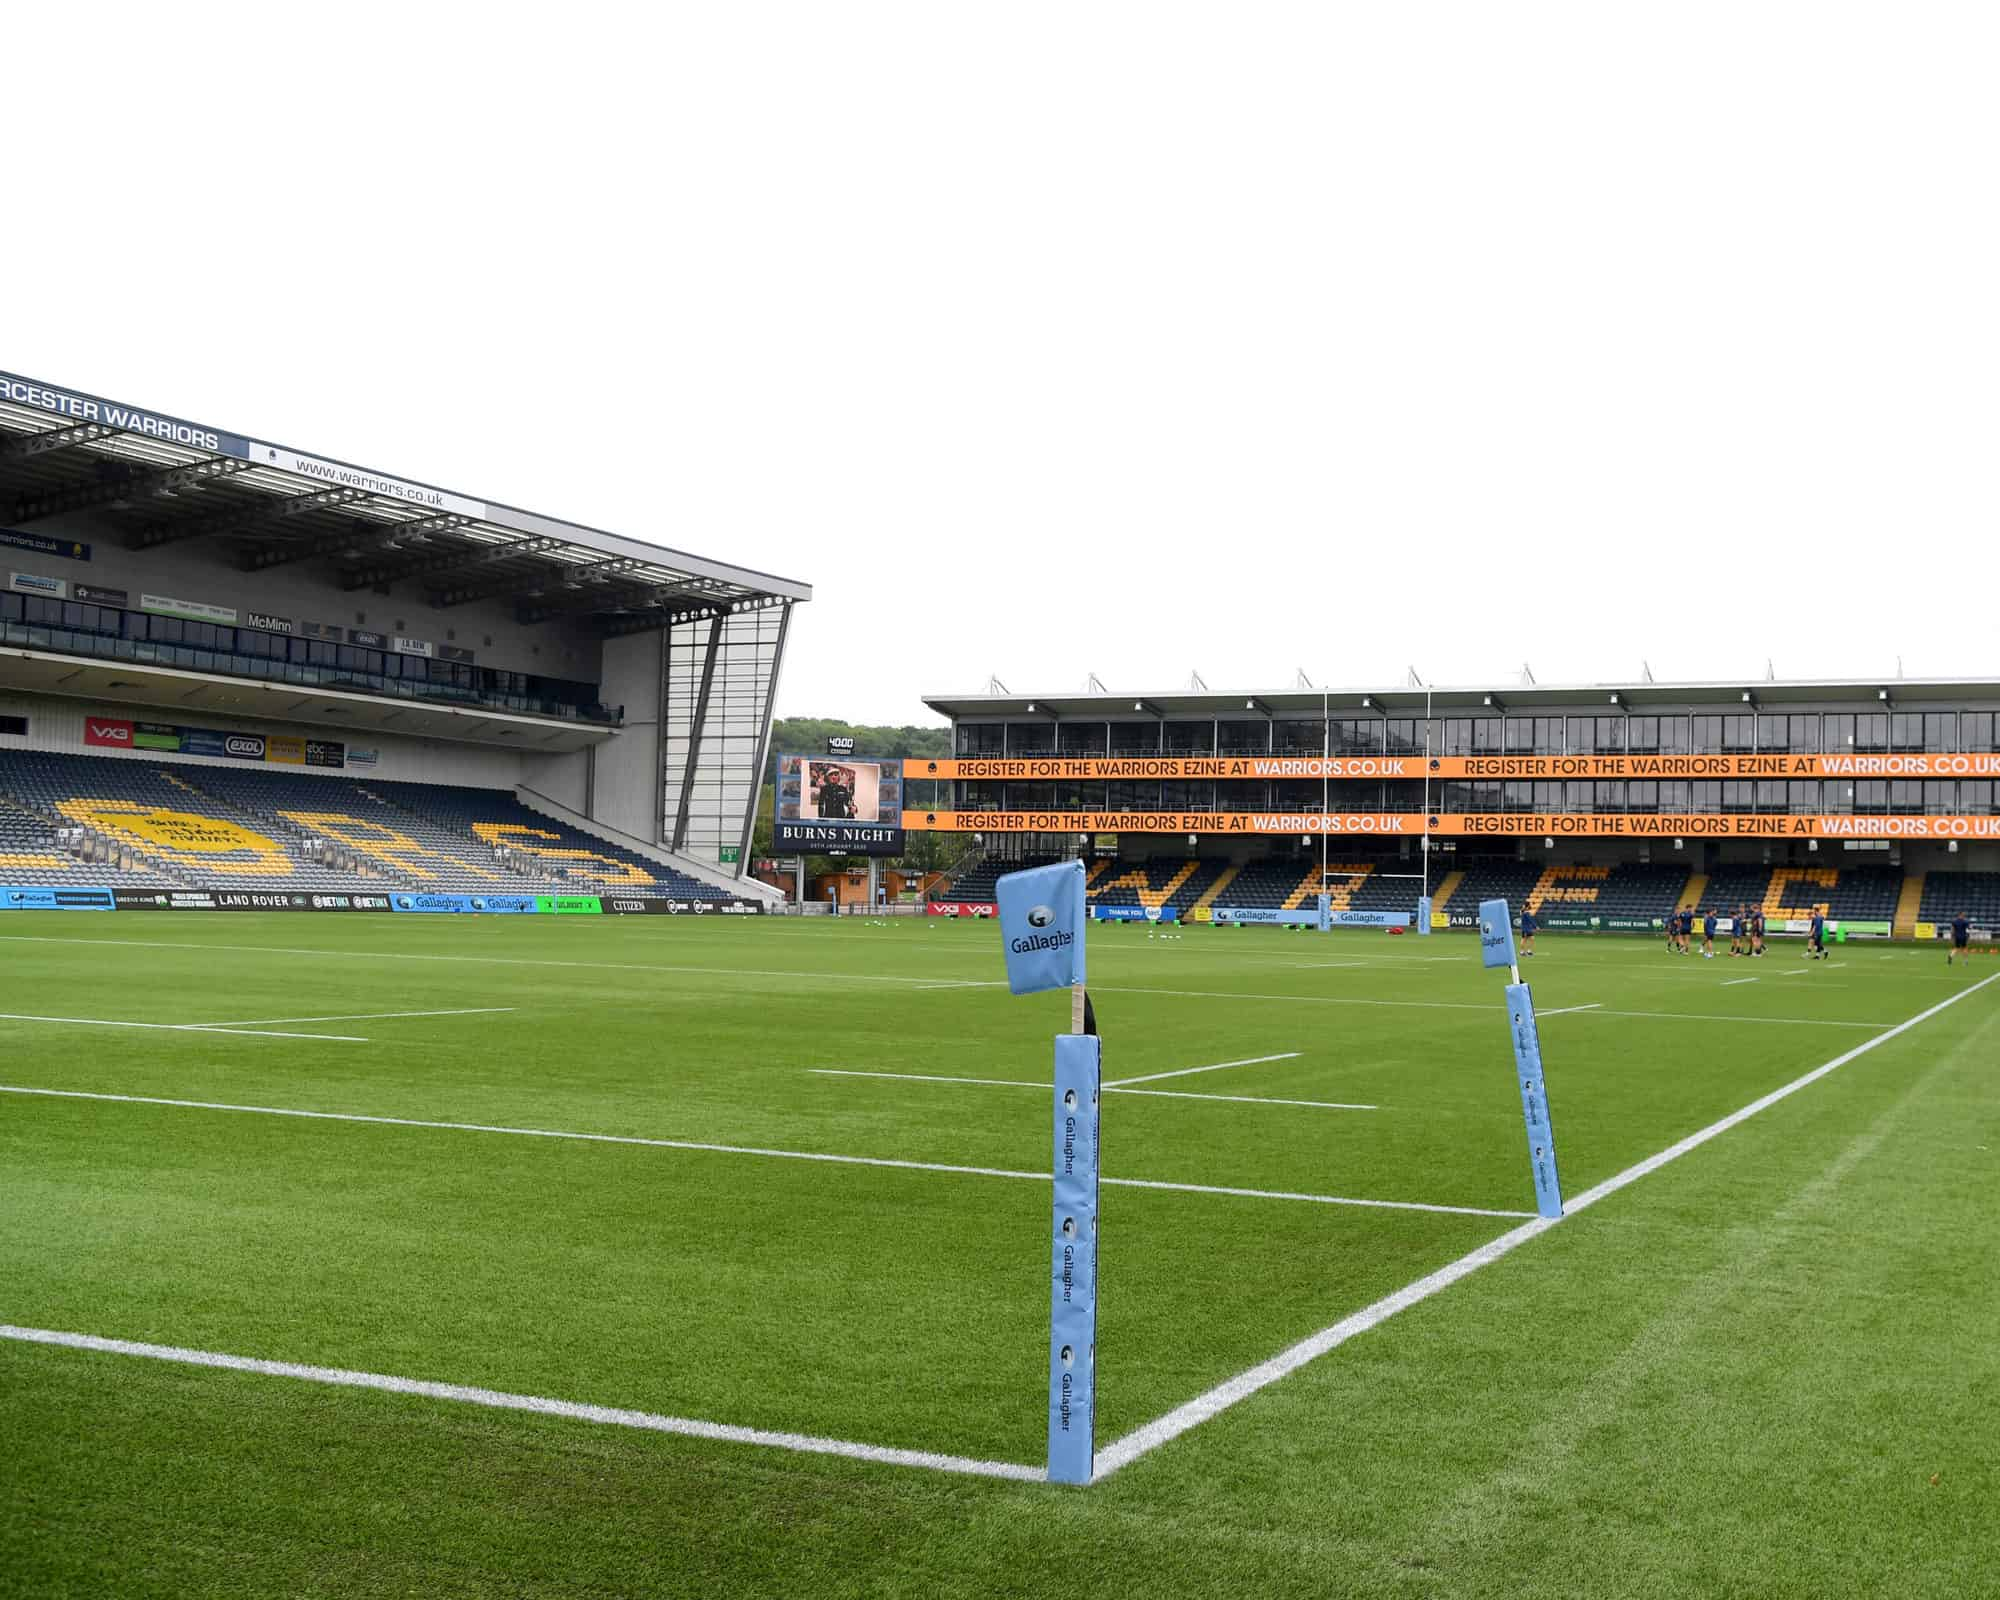 Worcester Warriors v Gloucester Rugby - Gallagher Premiership Rugby